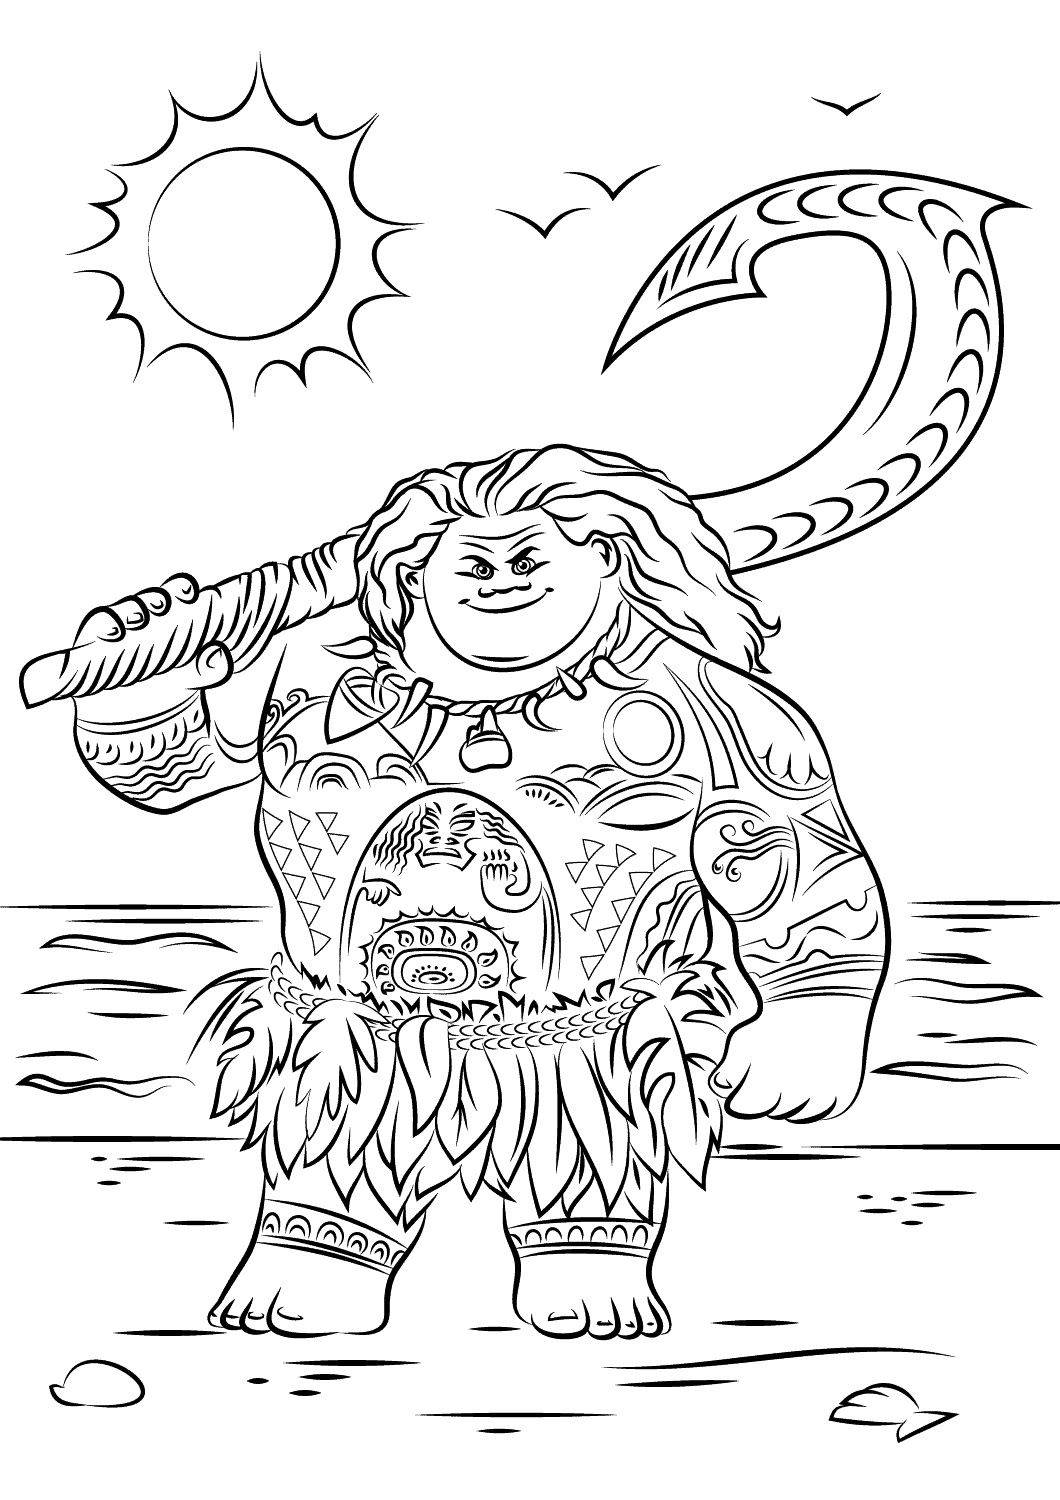 Printable Moana Coloring Pages Maui K5 Worksheets Moana Coloring Moana Coloring Pages Disney Coloring Pages [ 1500 x 1060 Pixel ]